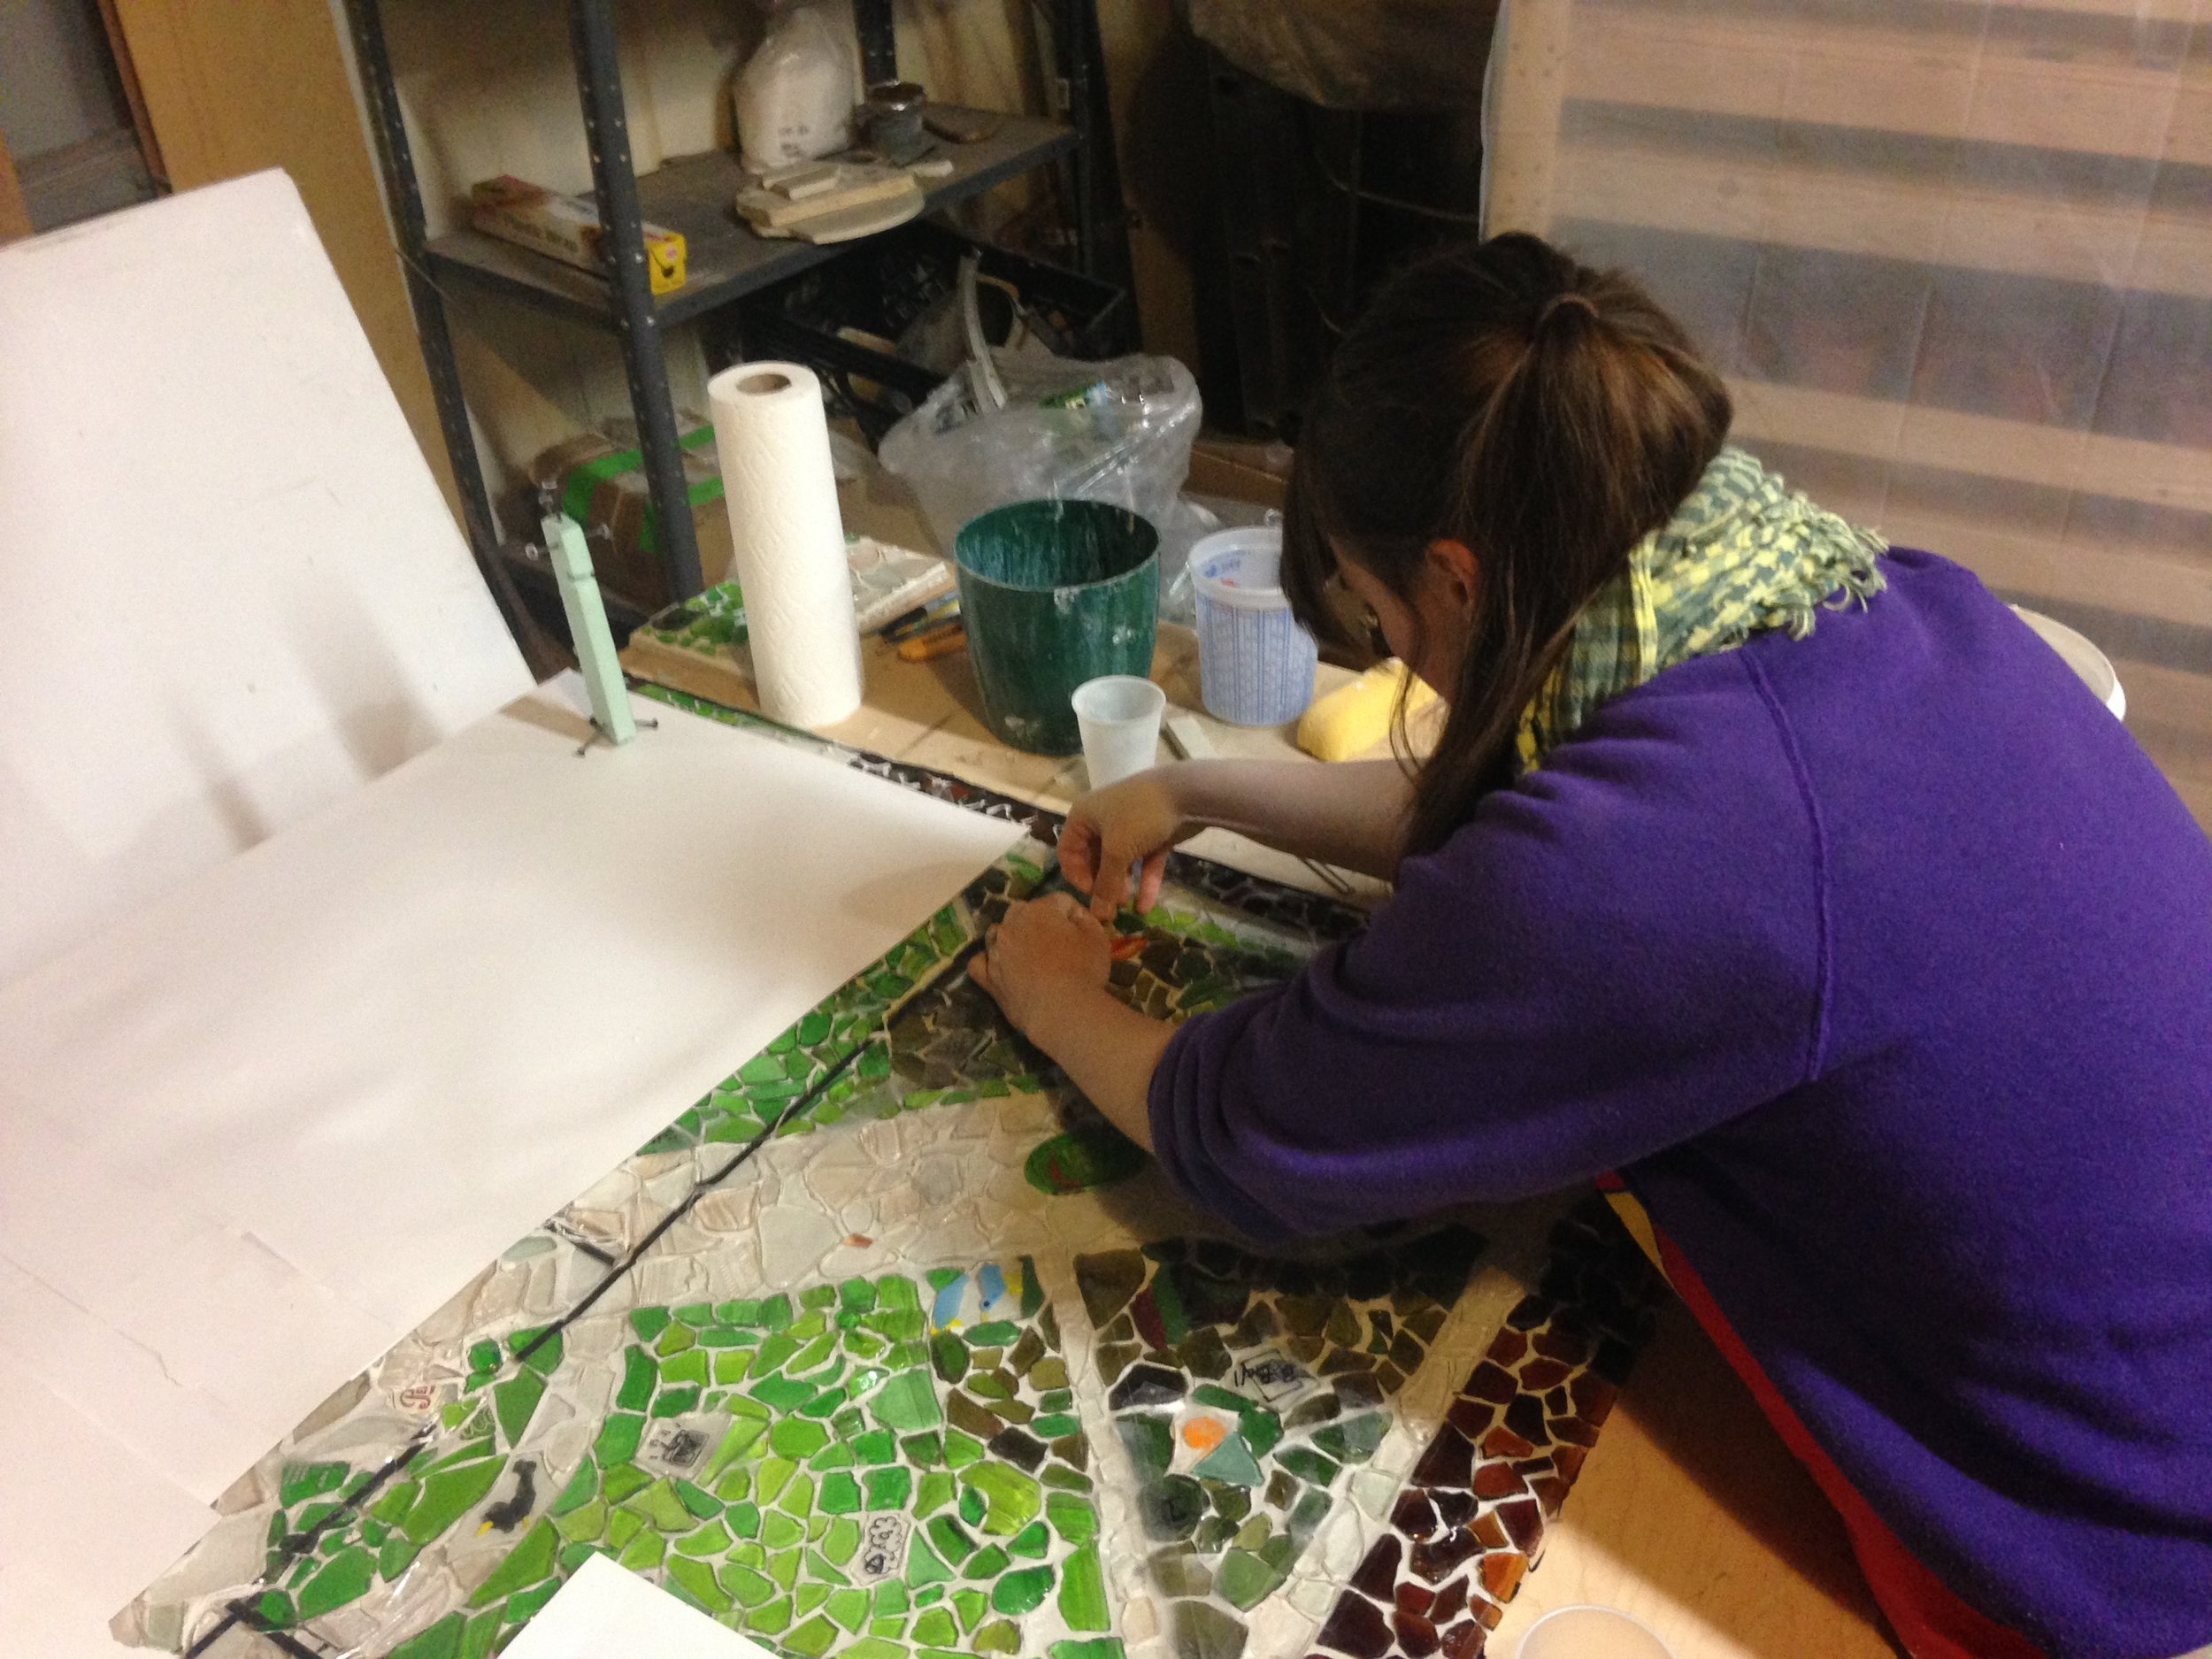 Amanda Patenaude at work, arranging the glass fragments to form a map of the park.